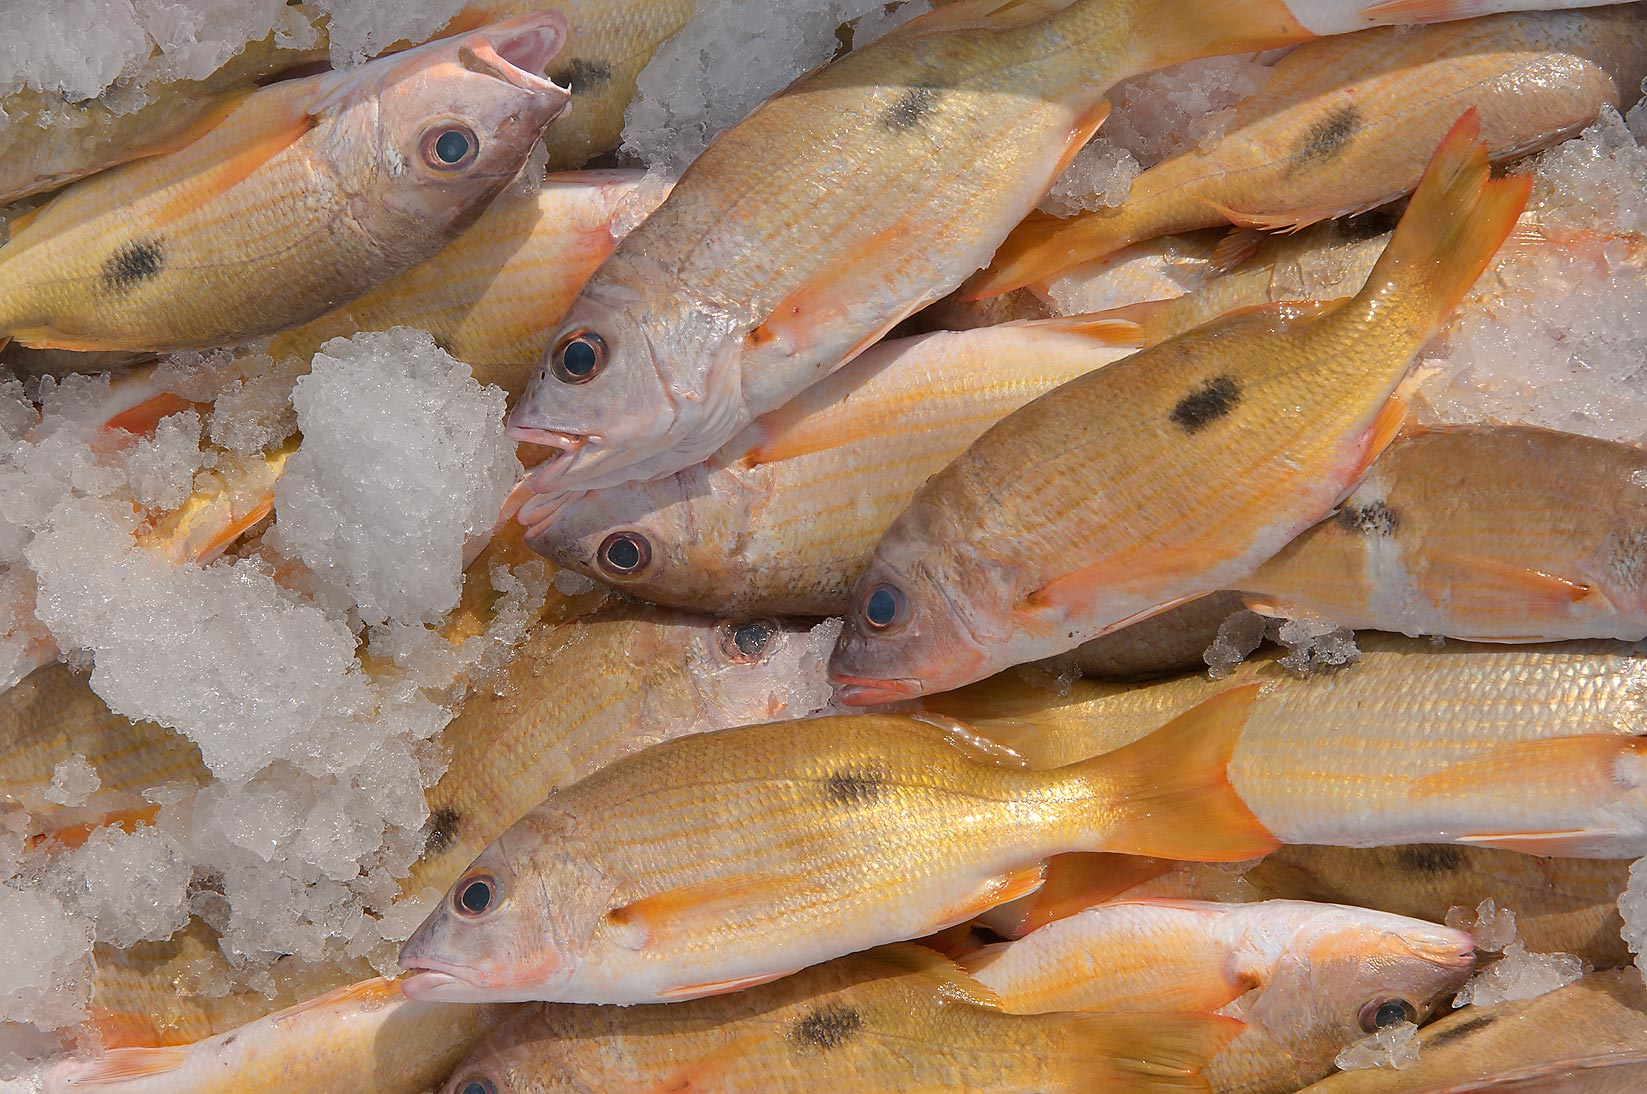 Yellow fish Blackspot snapper (Naisara, Lutjanus...in fish market. Al Wakrah, Qatar